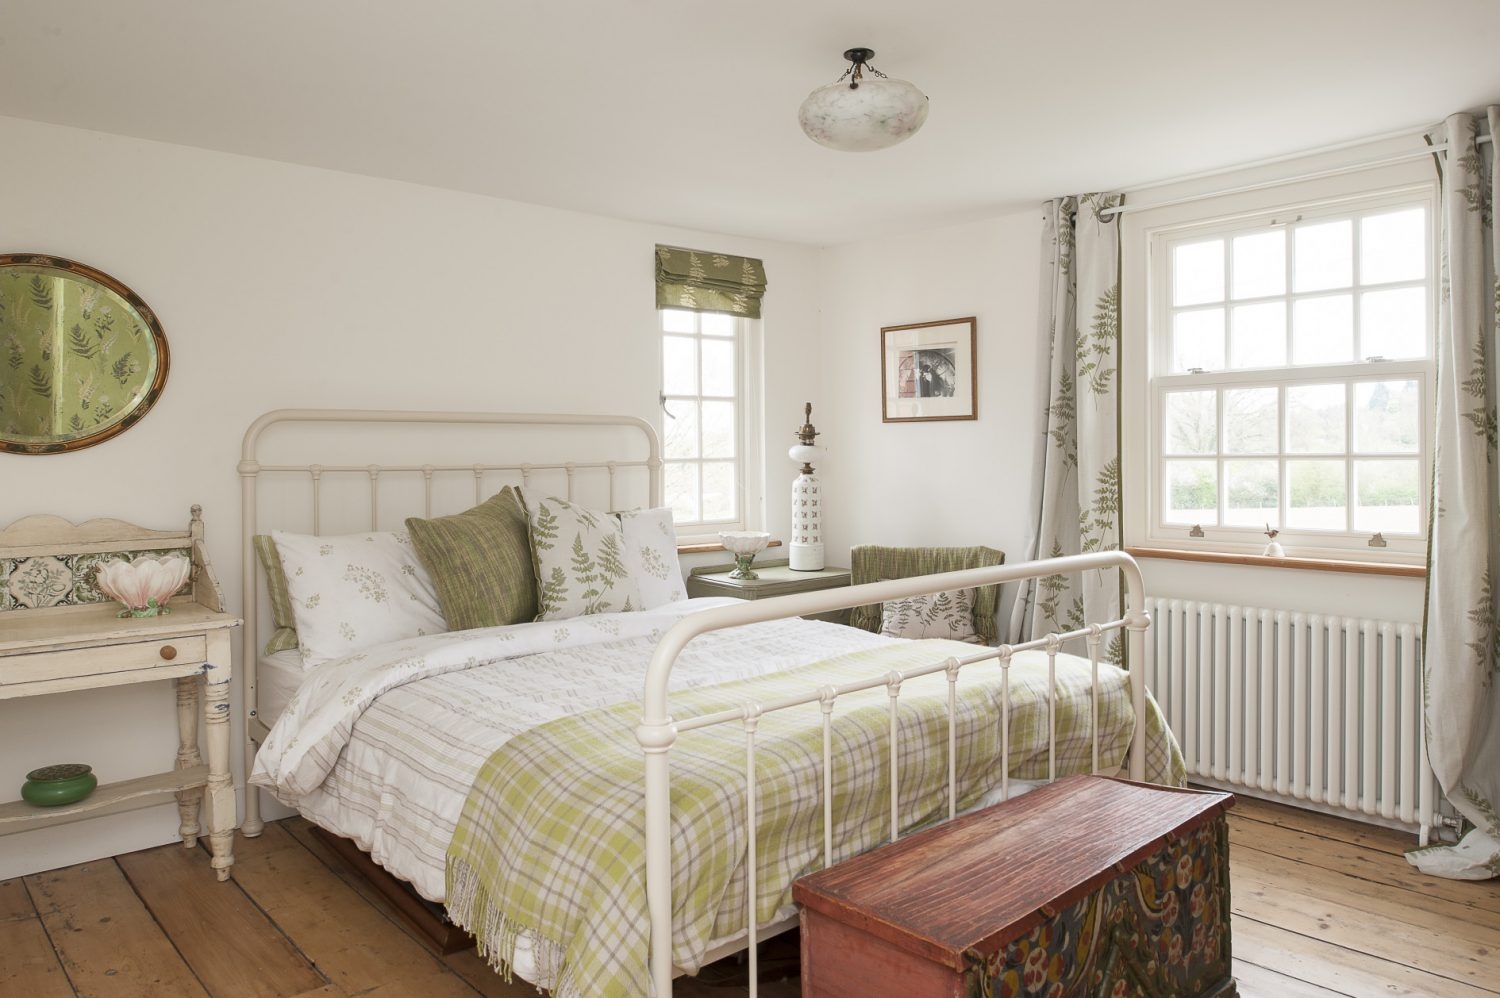 A spacious spare room is decorated in a relaxing combination of white and green, with a Victorian style metal bedstead as the focal point